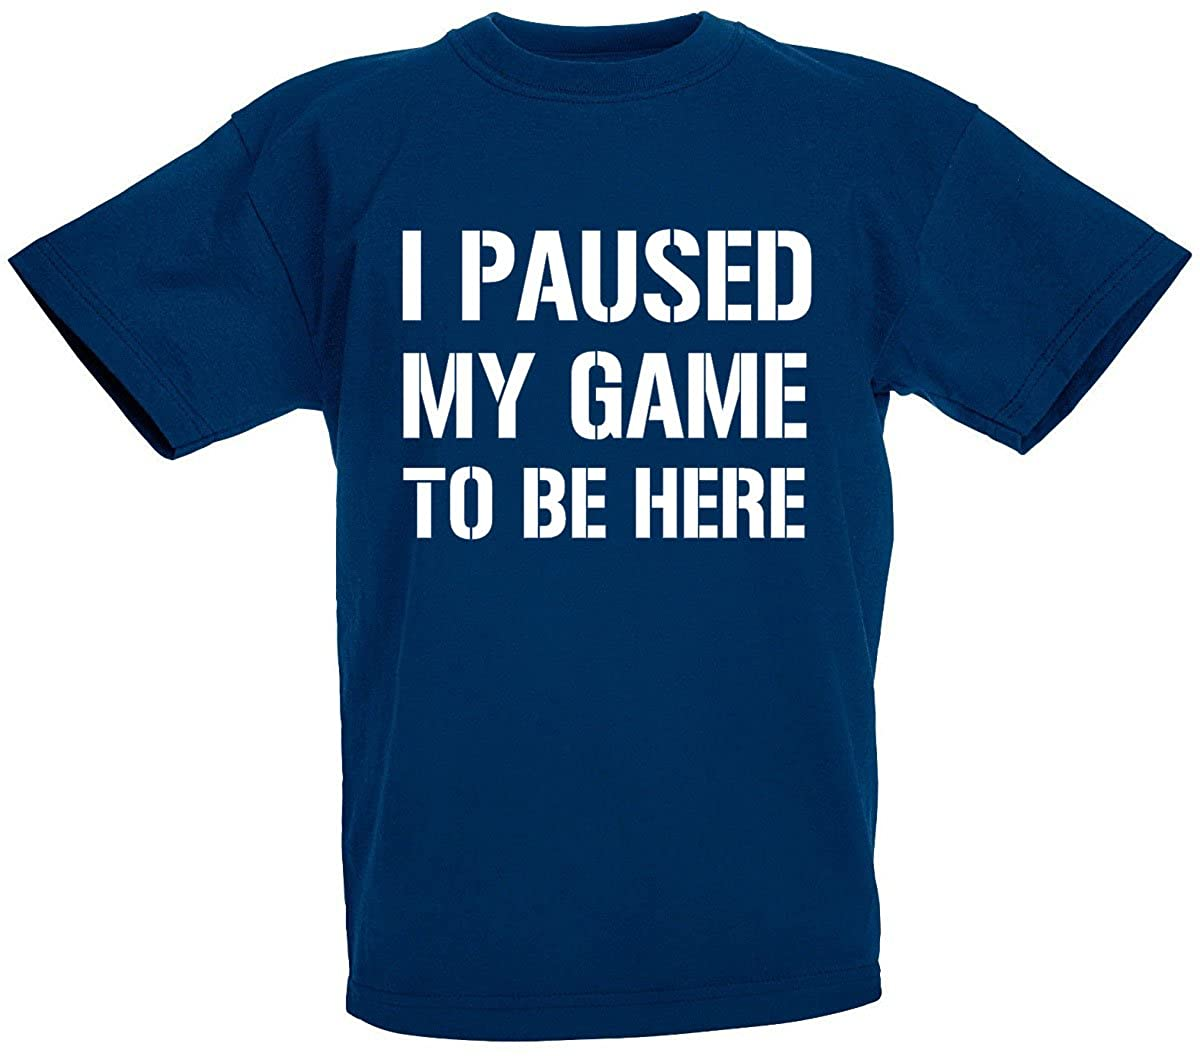 Image result for image of I paused my game shirt